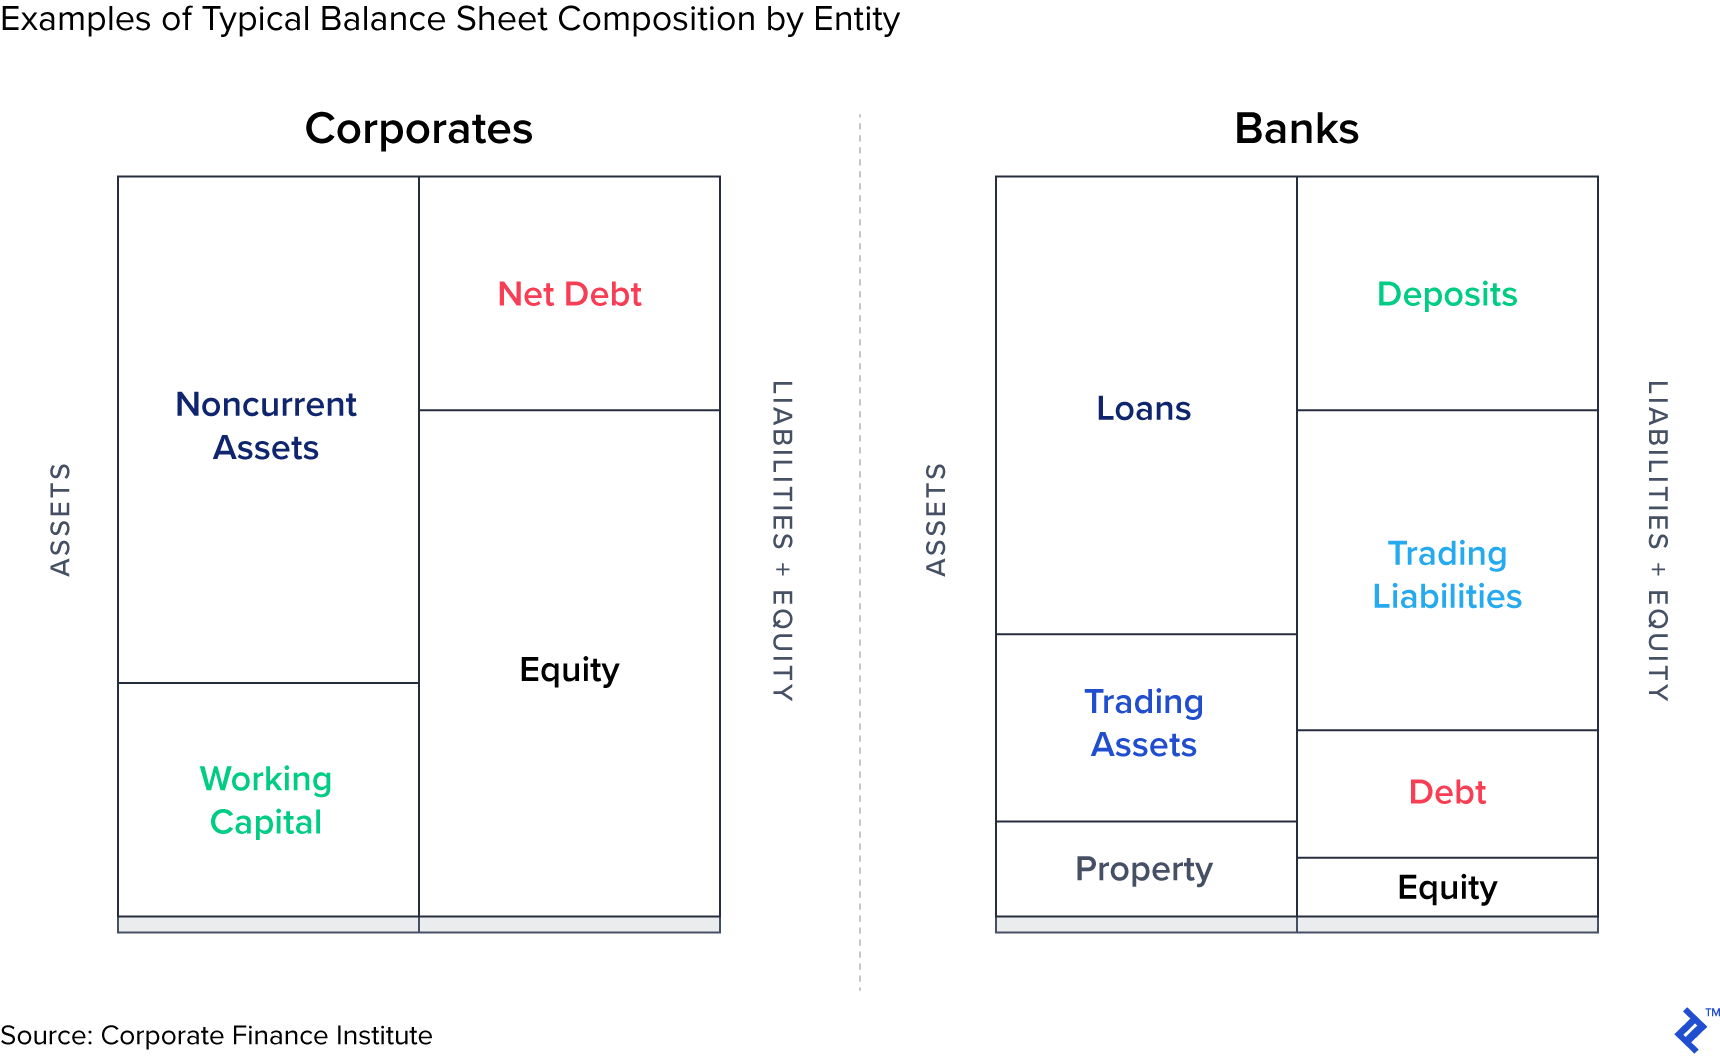 Examples of items that constitute a balance sheet